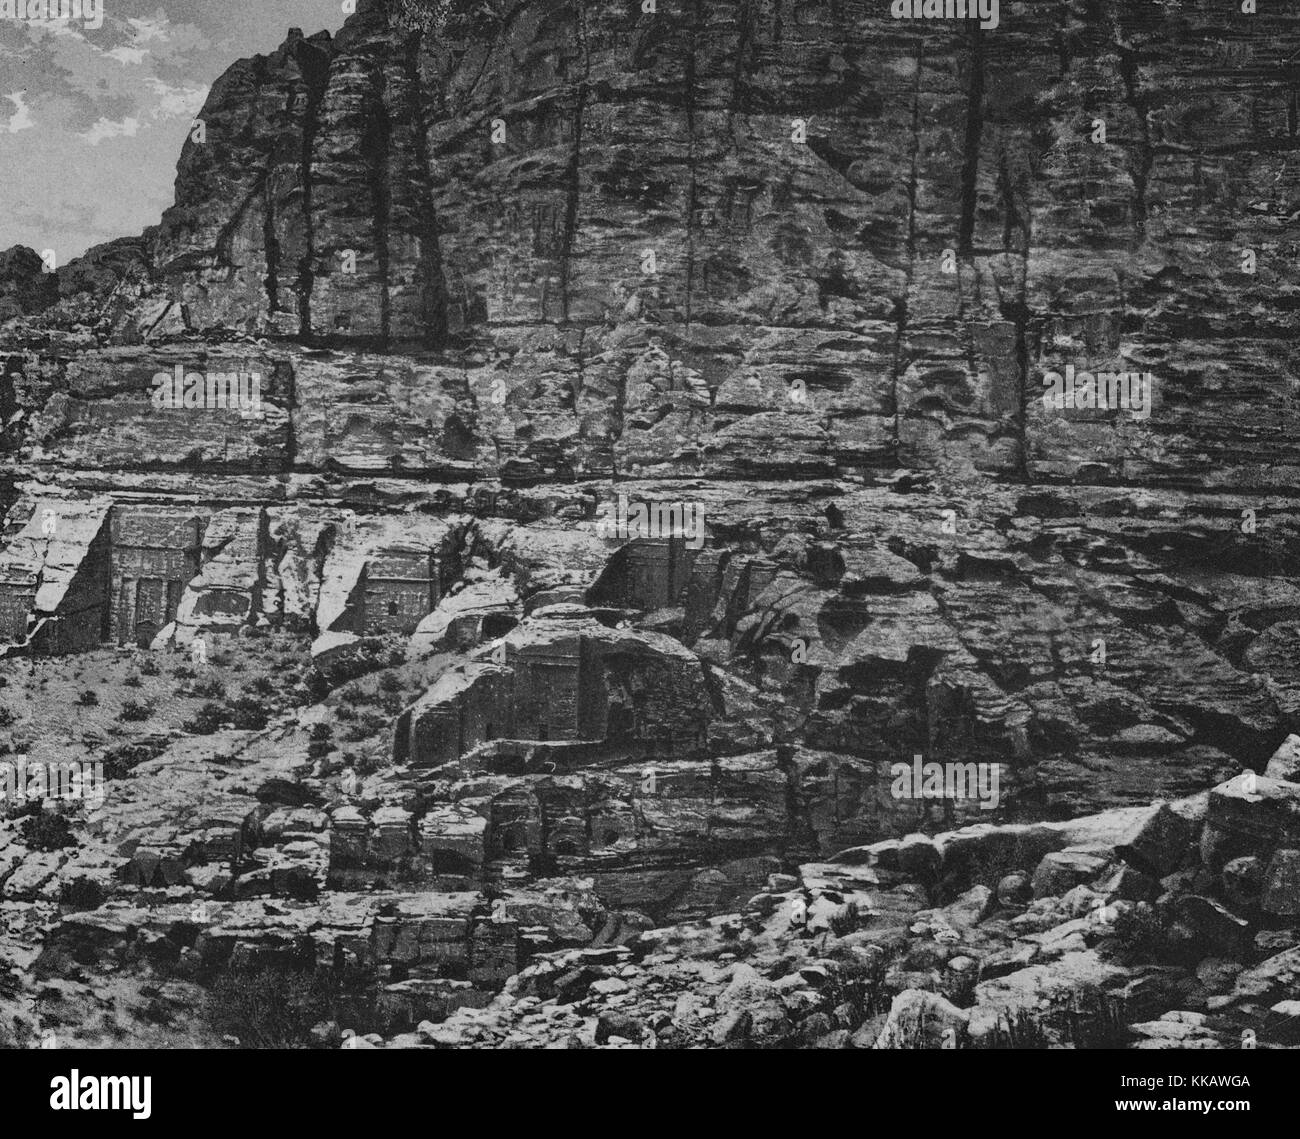 The archaeological city of Petra, the rock-cut architecture is carved in to the slope of Jebel al-Madhbah, Jordan, - Stock Image